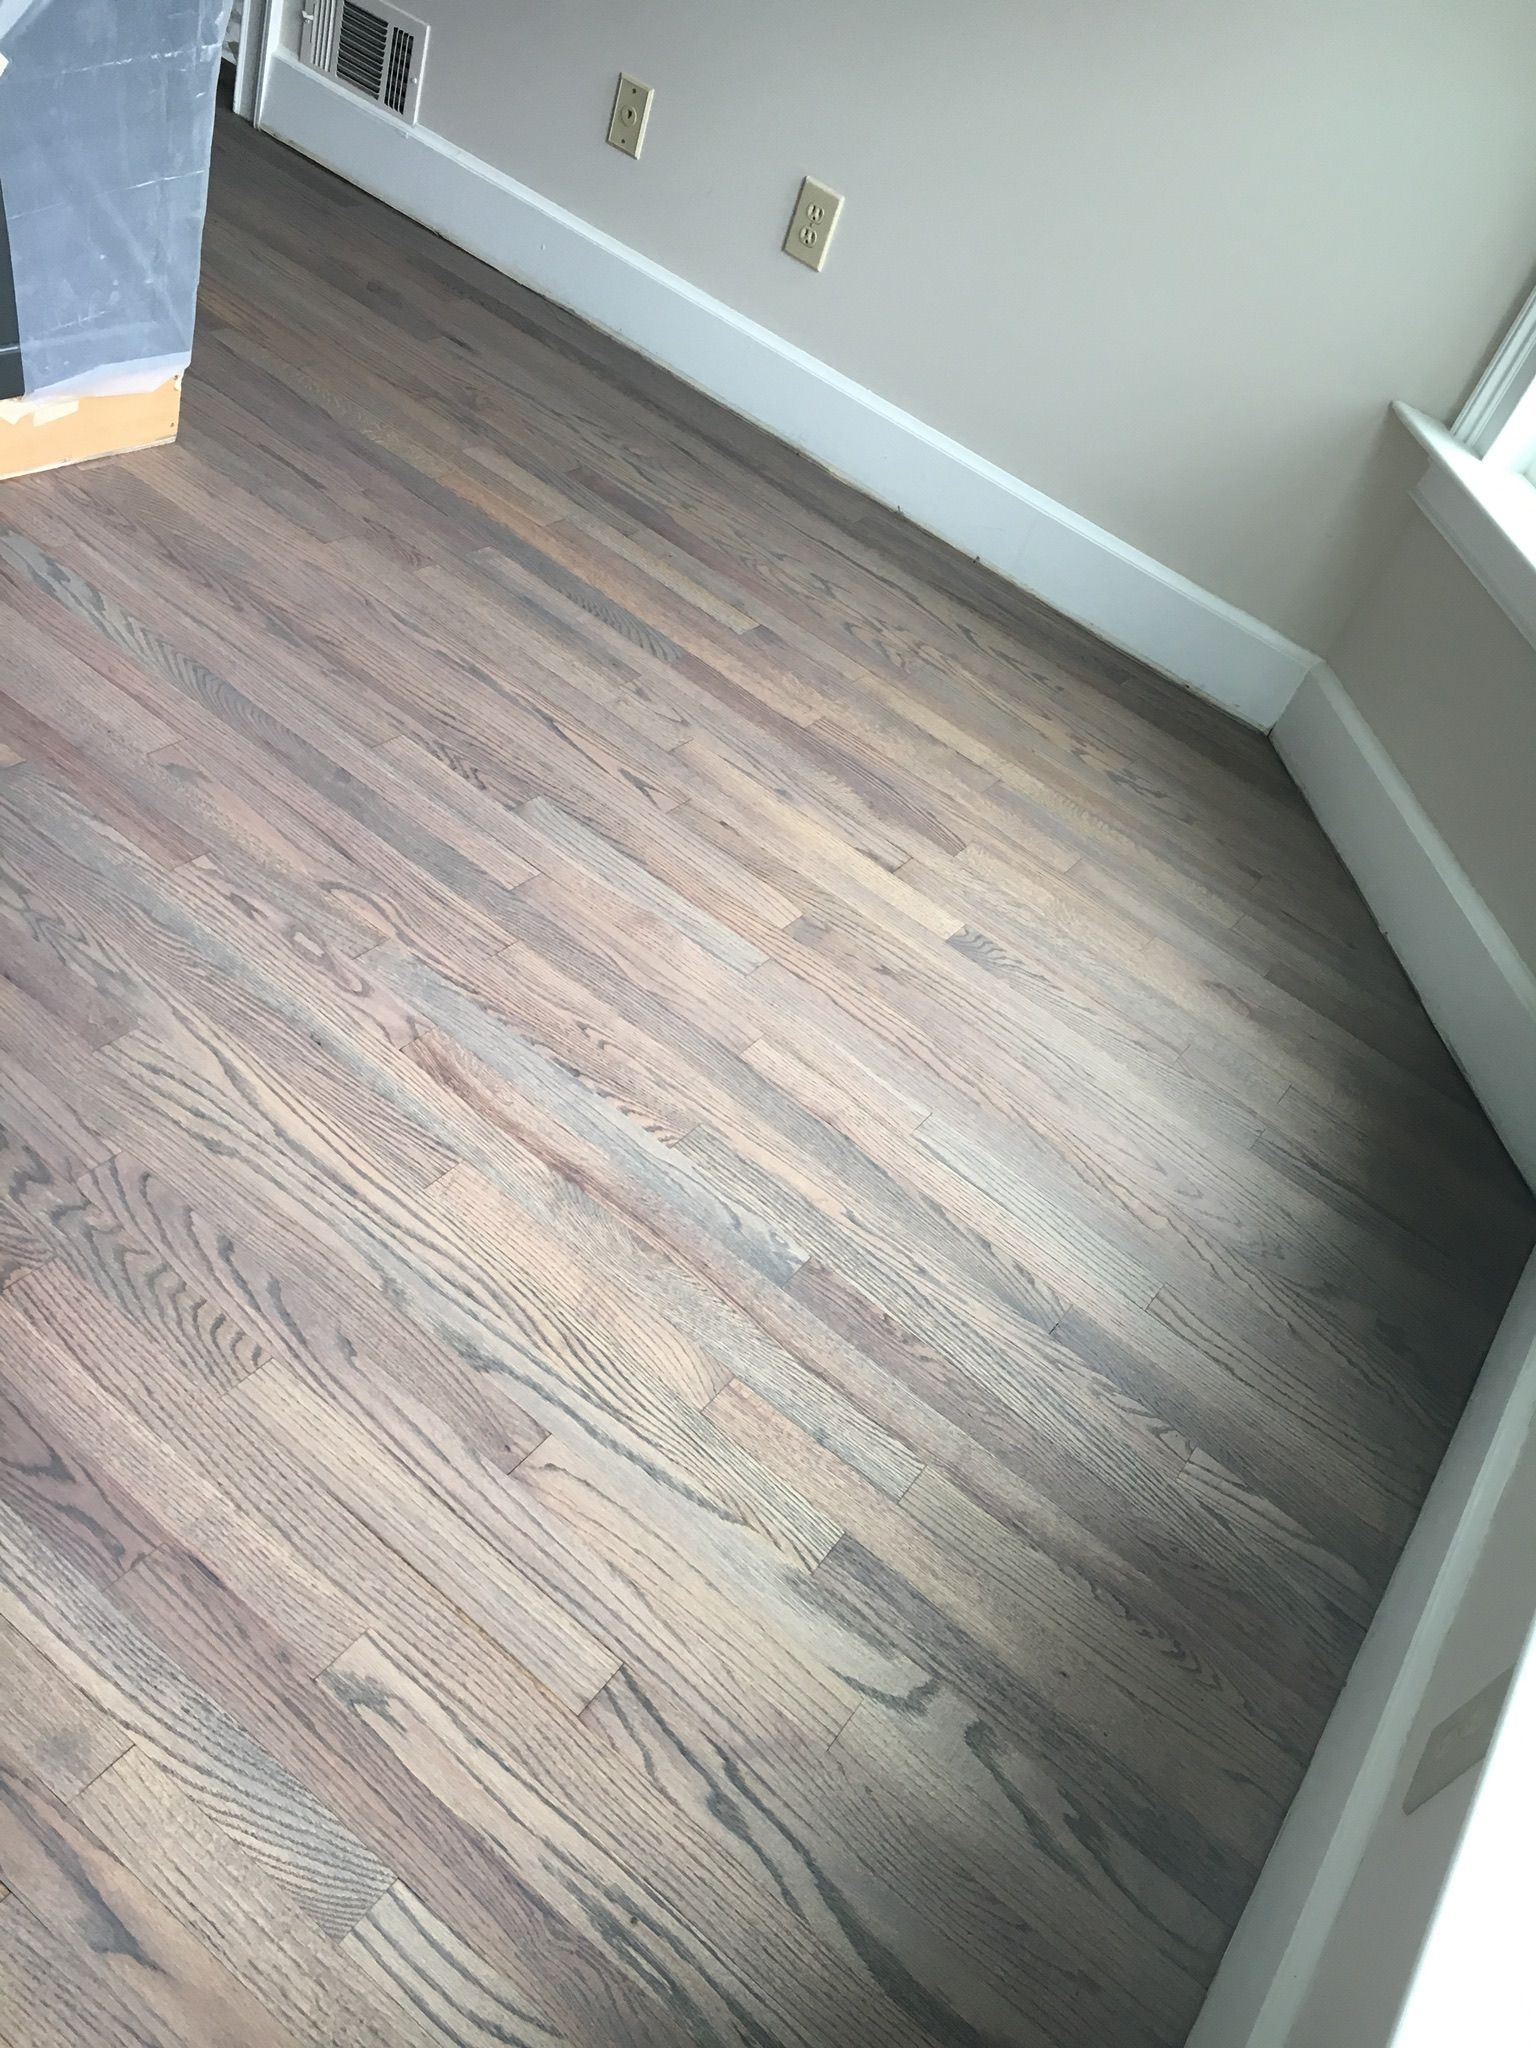 Lino Parquet Blanc Classic Gray And Weathered Oak Diy Home Projects In 2019 Wood